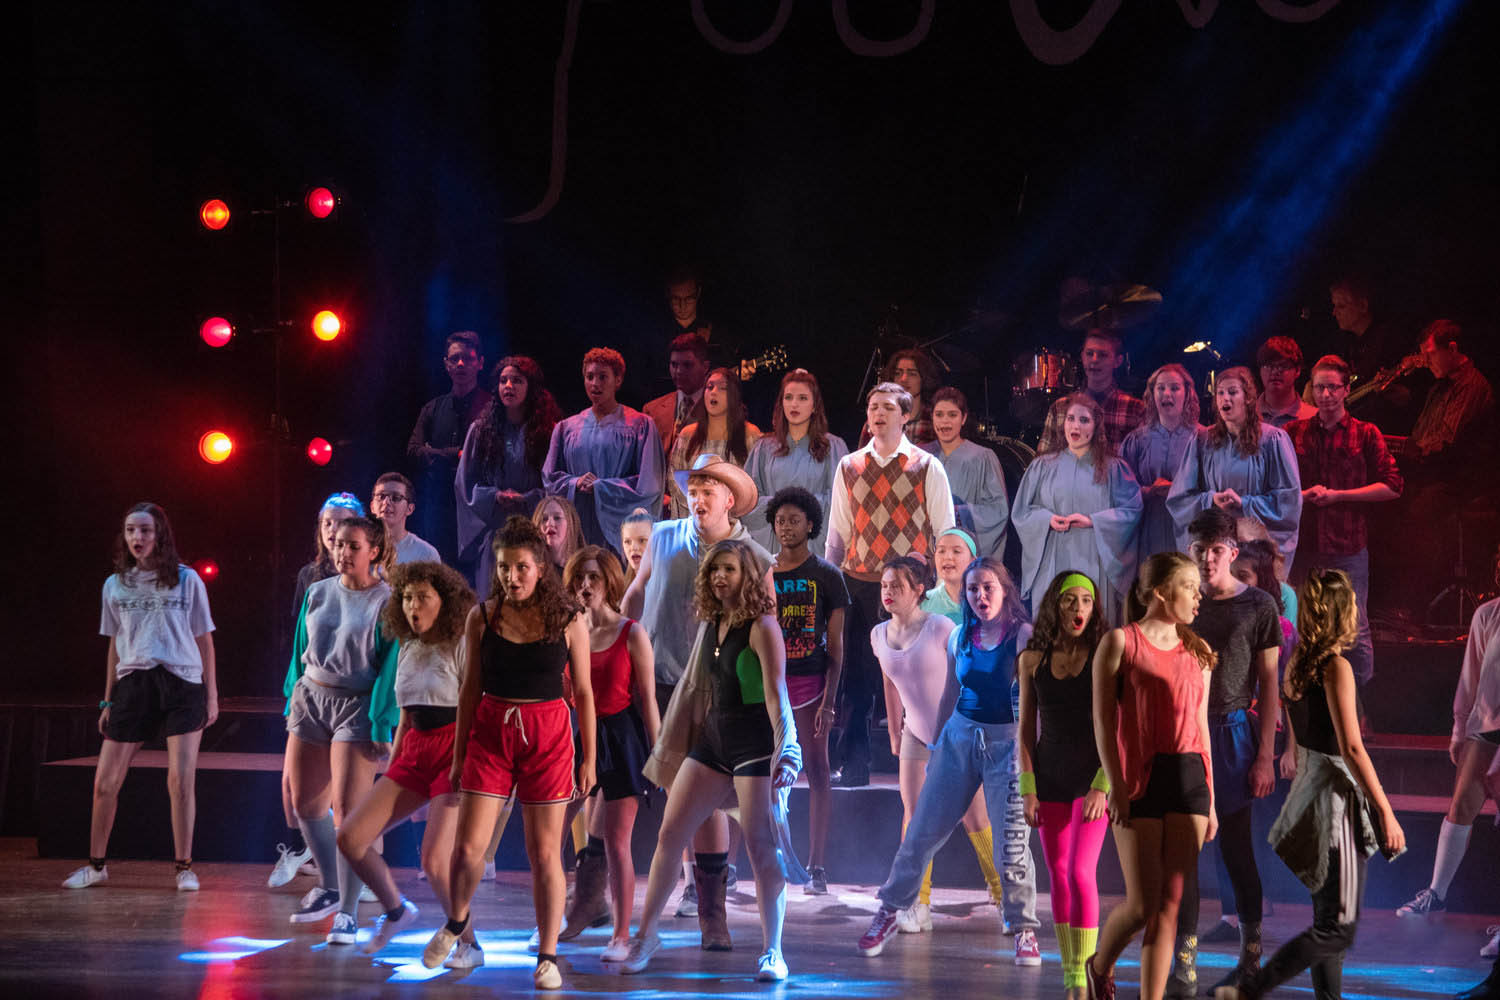 Footloose+School+Performance-4.jpg